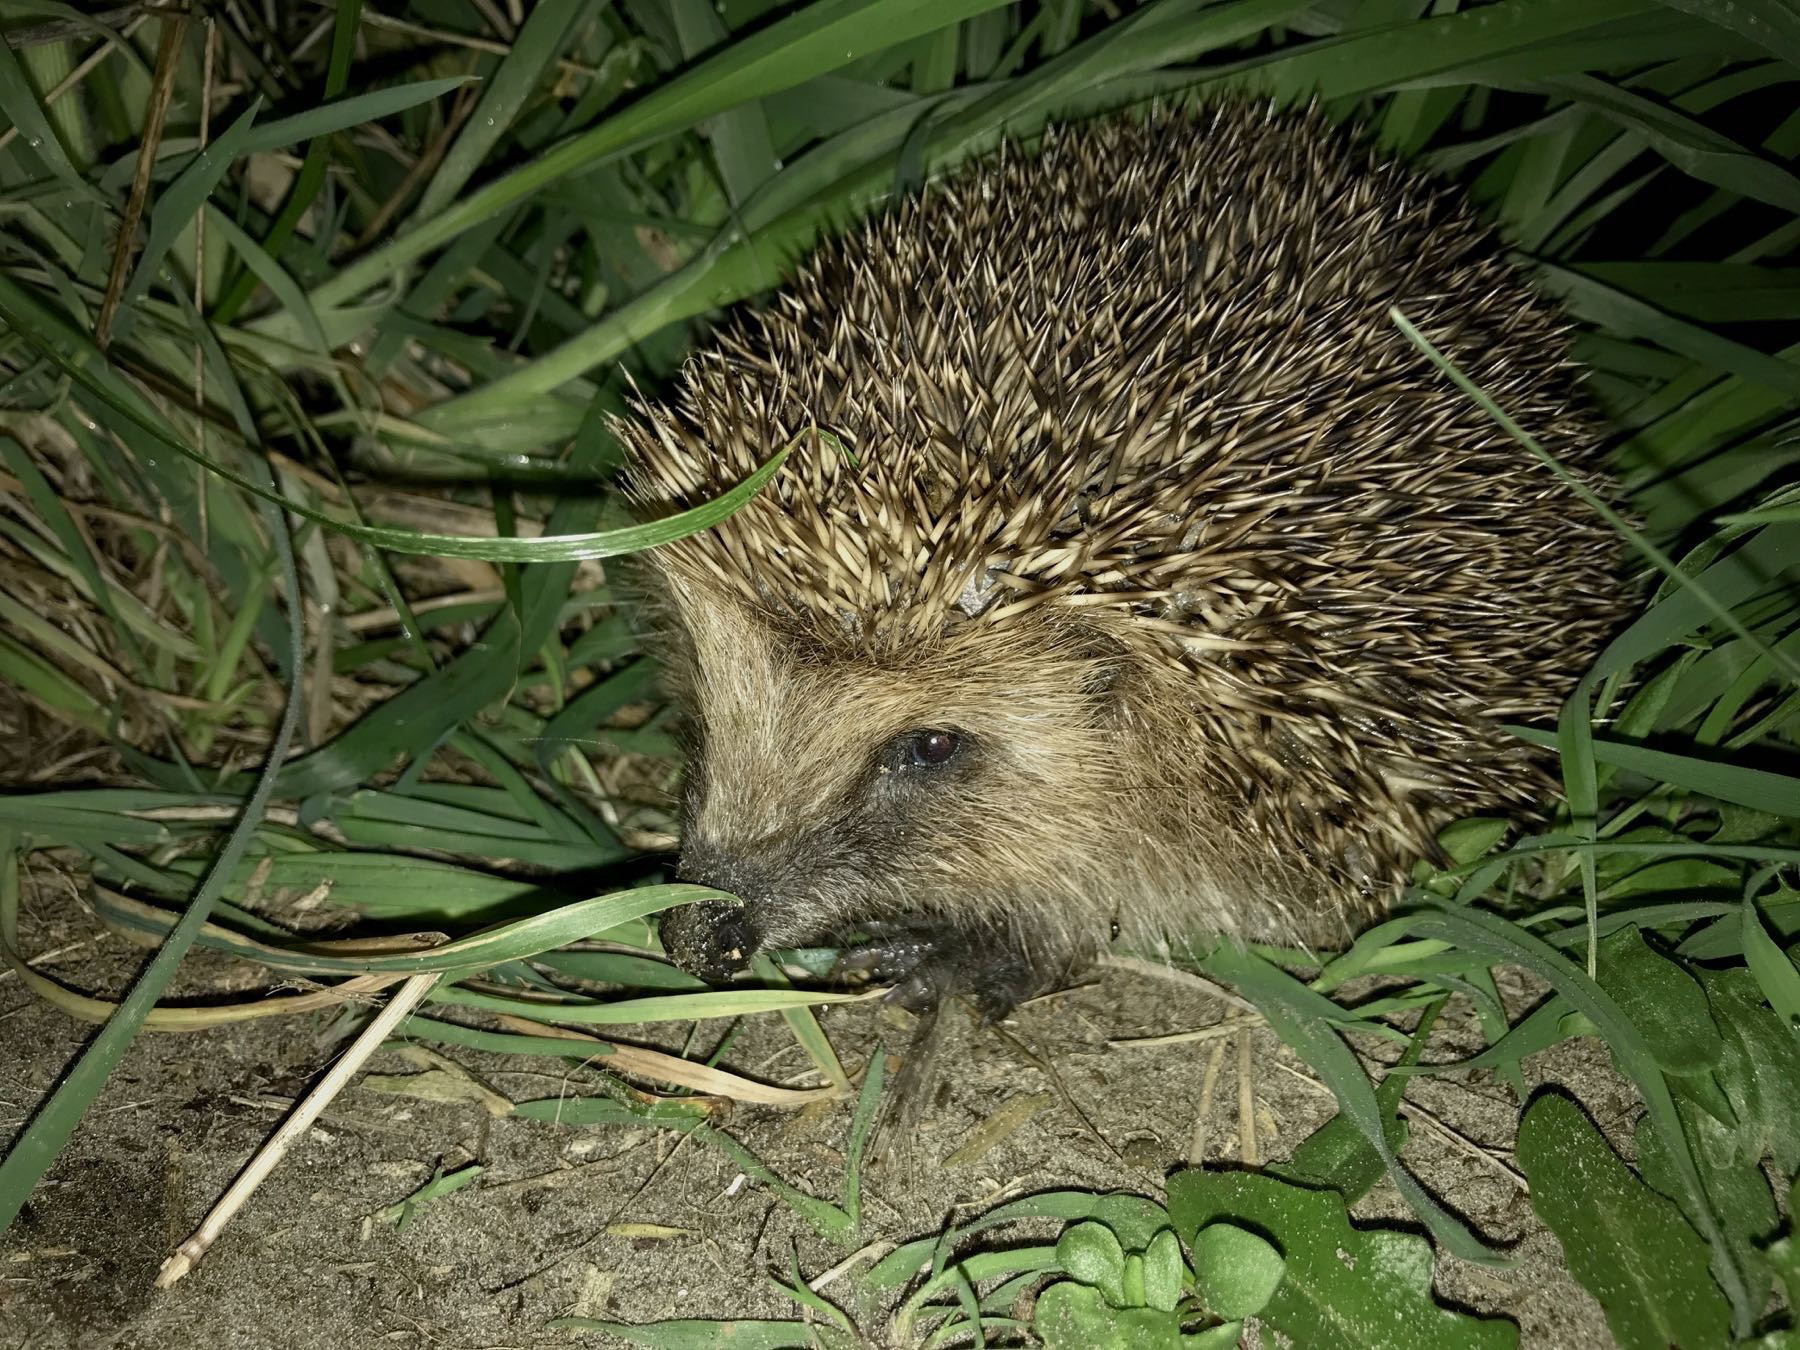 Hedgehog in the grass.